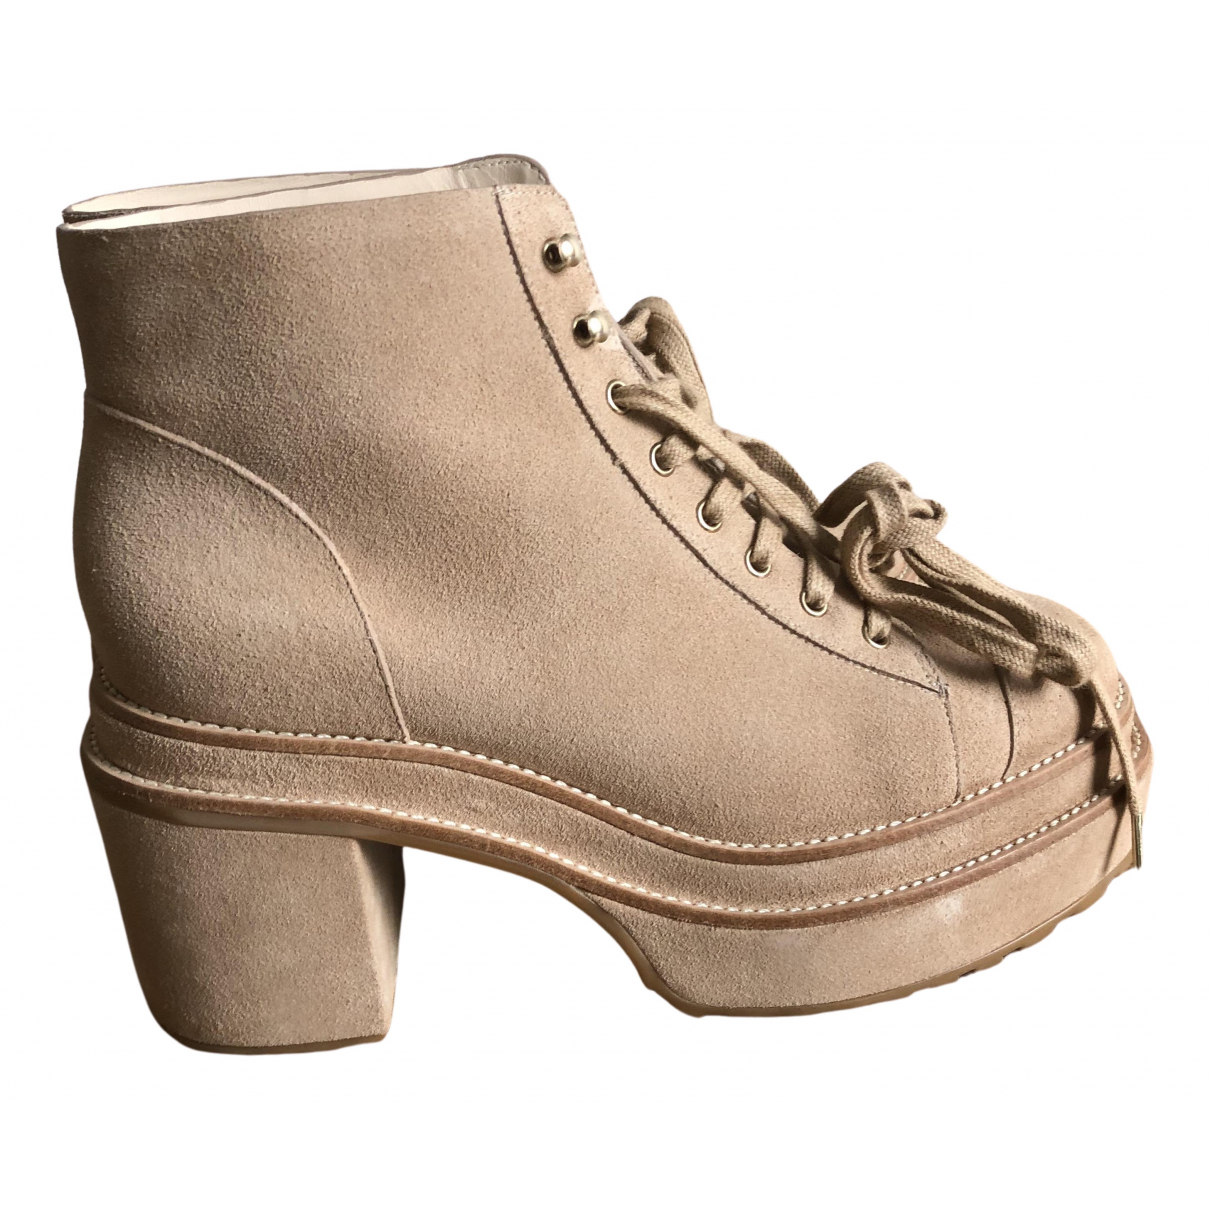 Cult Gaia N Beige Suede Ankle boots for Women 39 EU